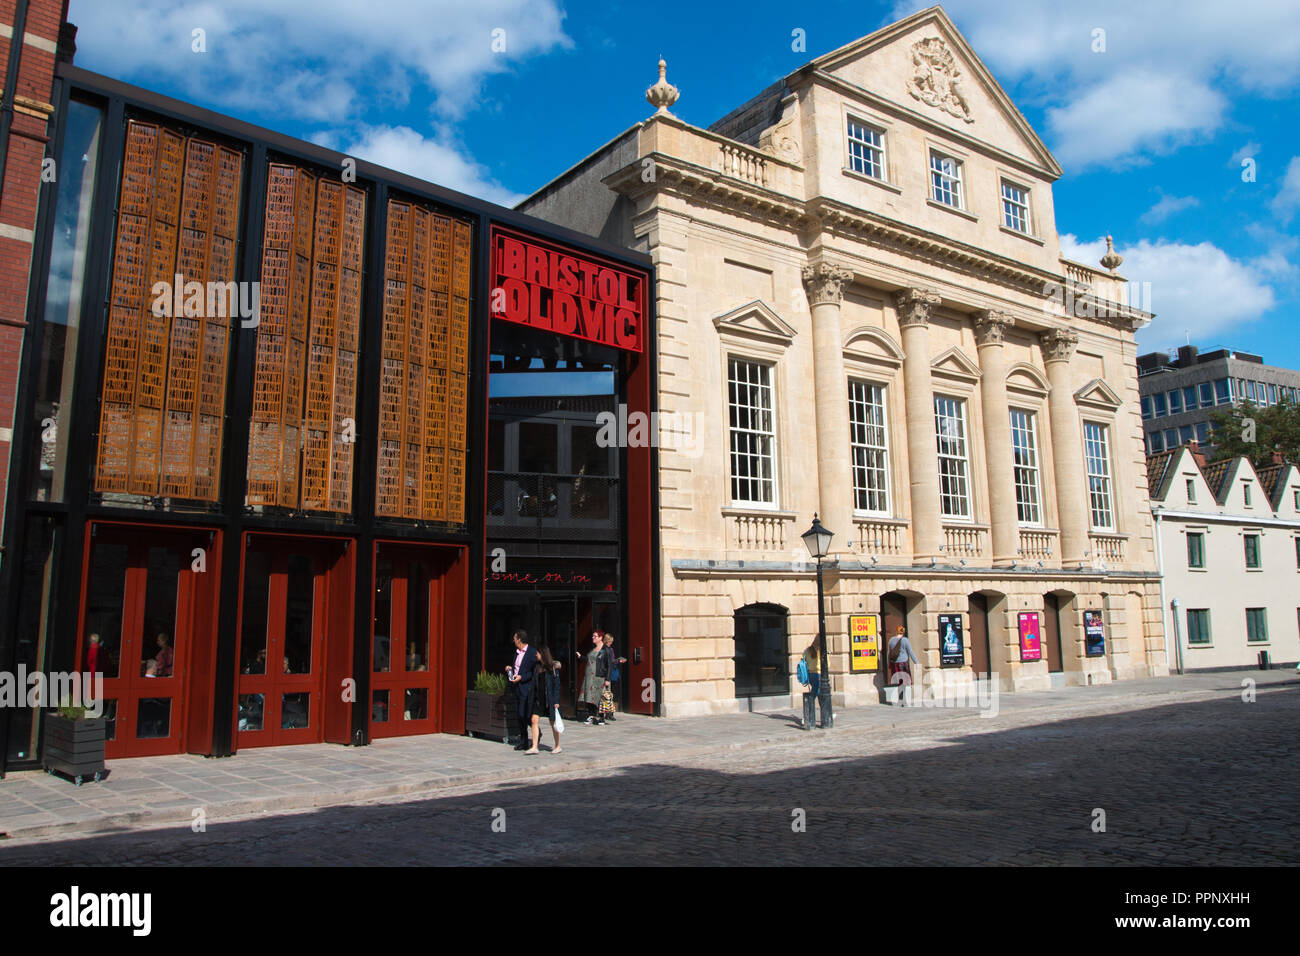 BRISTOL OLD VIC: New Foyer - Stock Image